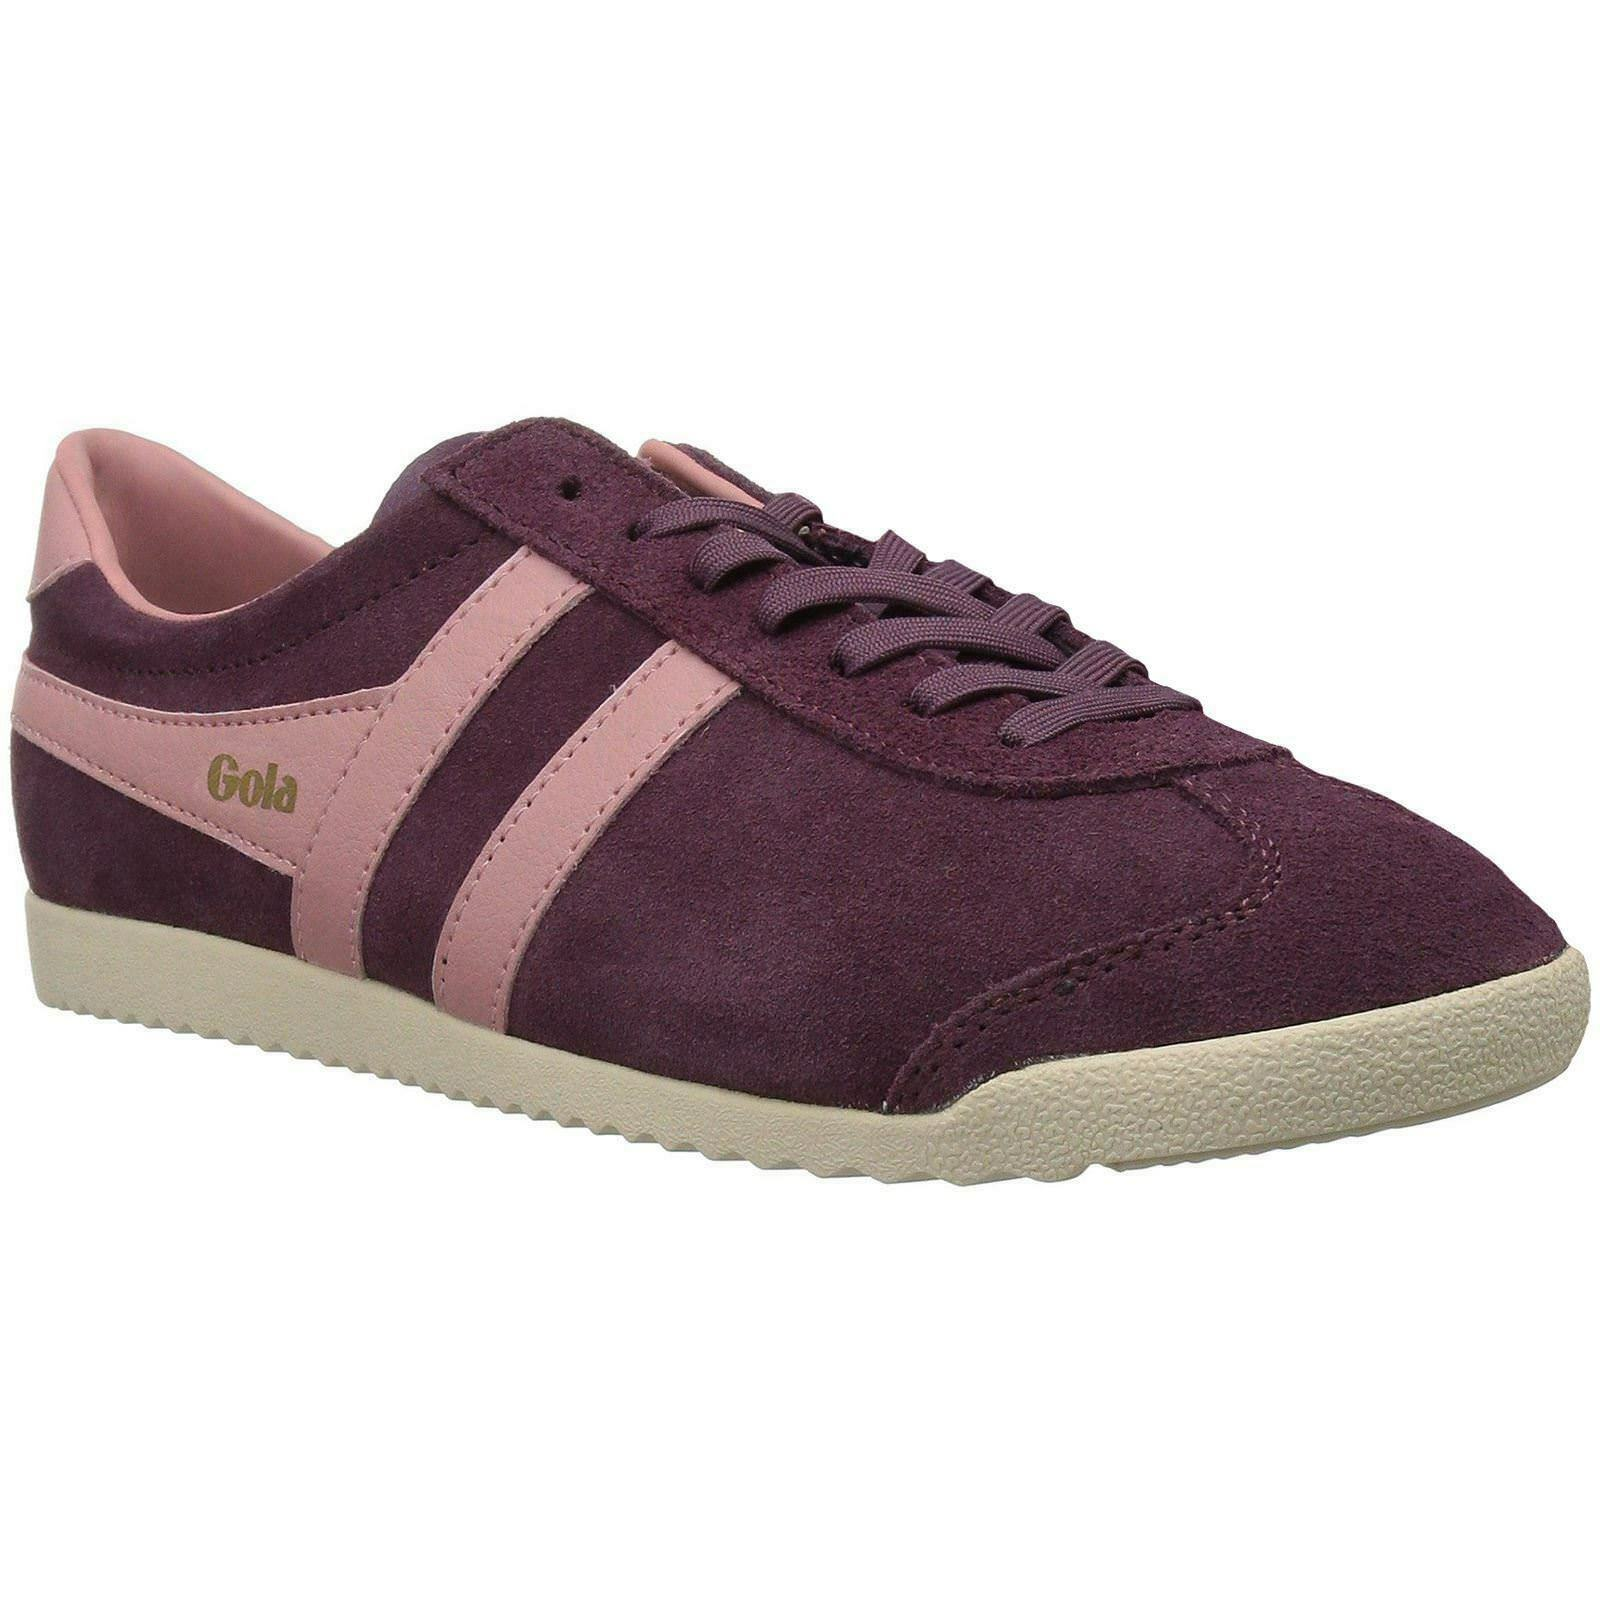 Gola Bullet Windsor Wine Coral Womens Suede Low-top Sneaker UK Size 3